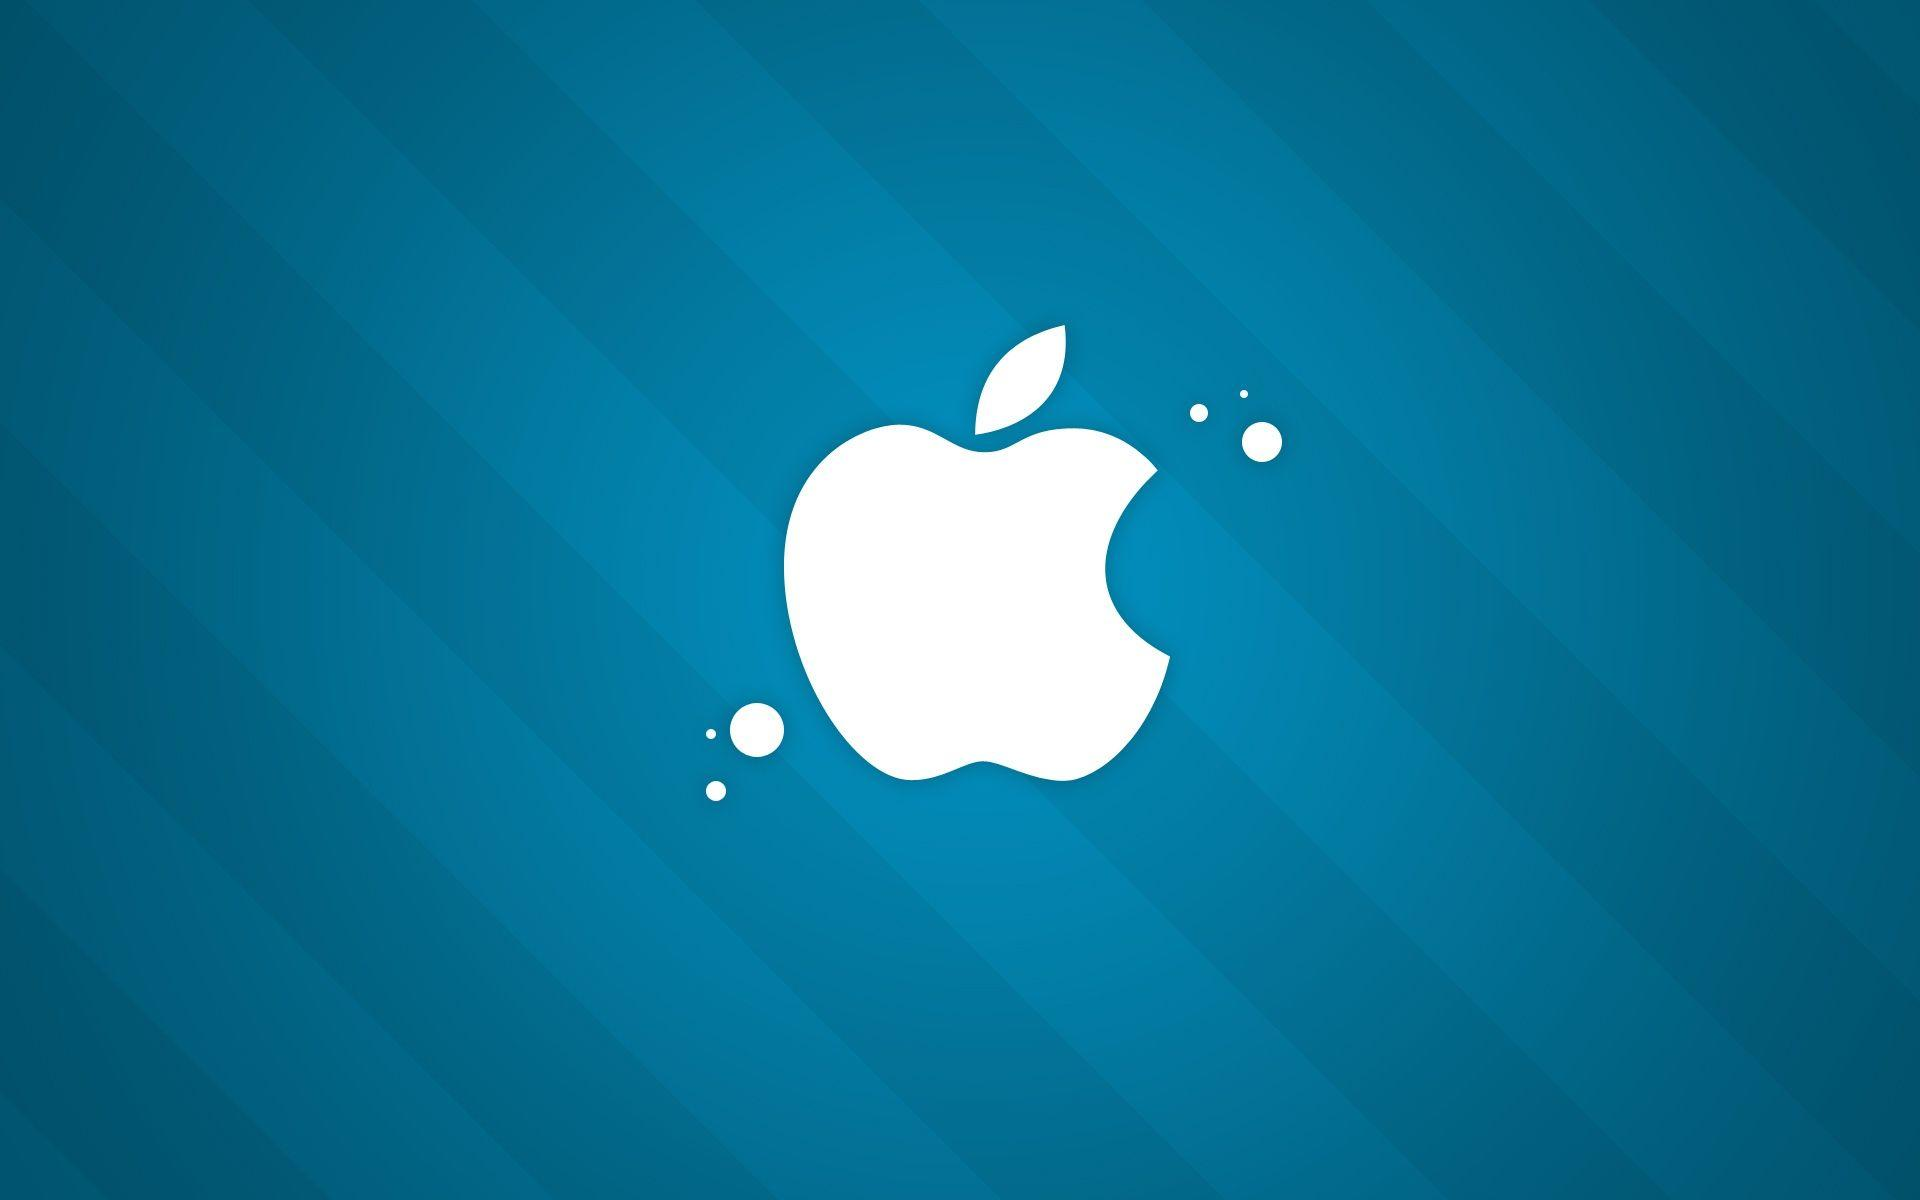 Beautiful Free Apple iPhone S Wallpapers